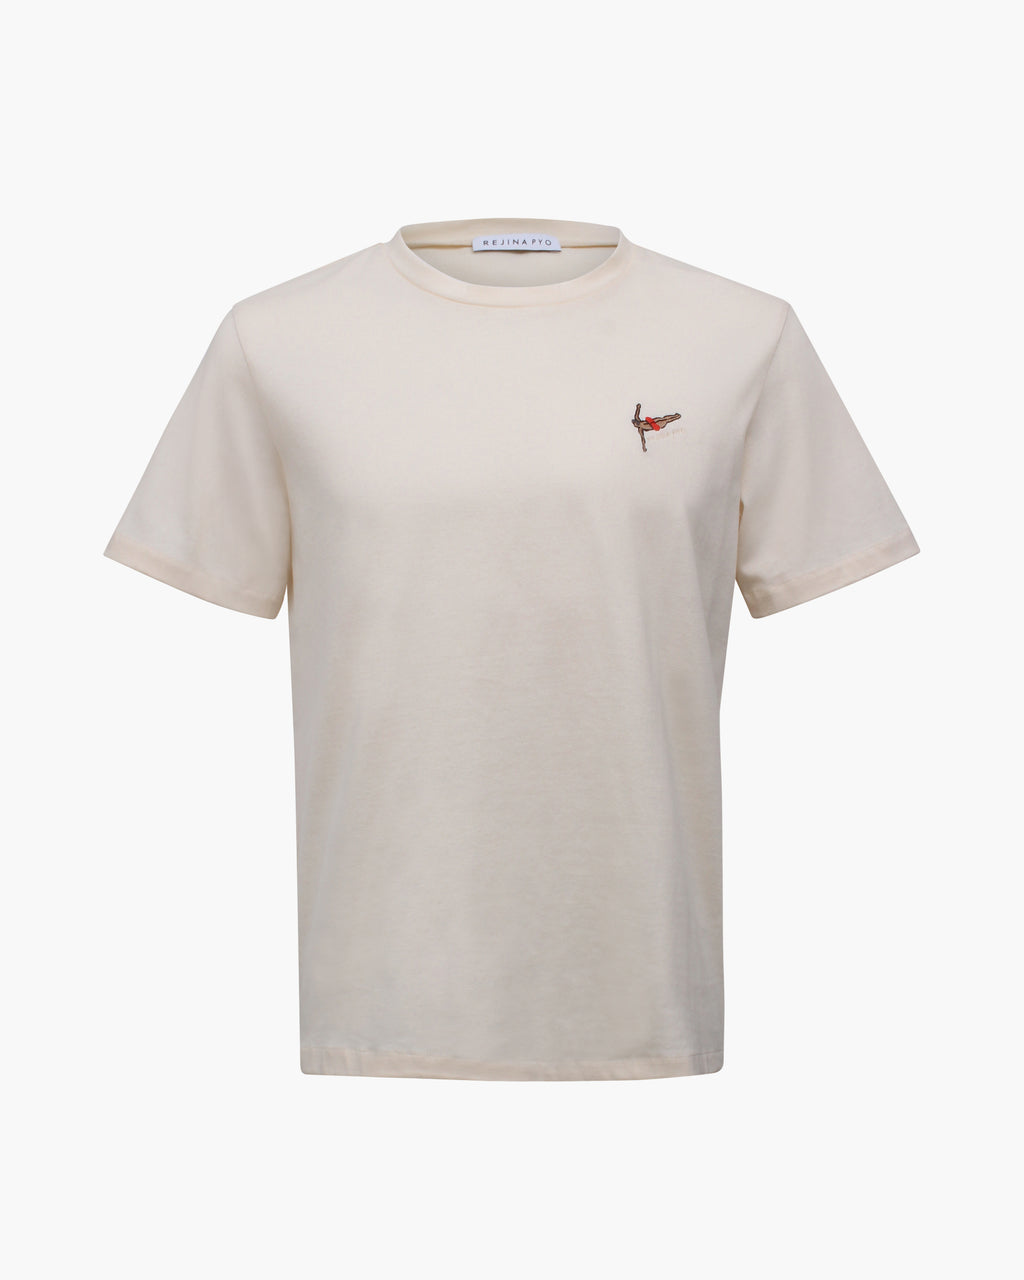 Rhys T-shirt Cotton Jersey Off-white Embroidery